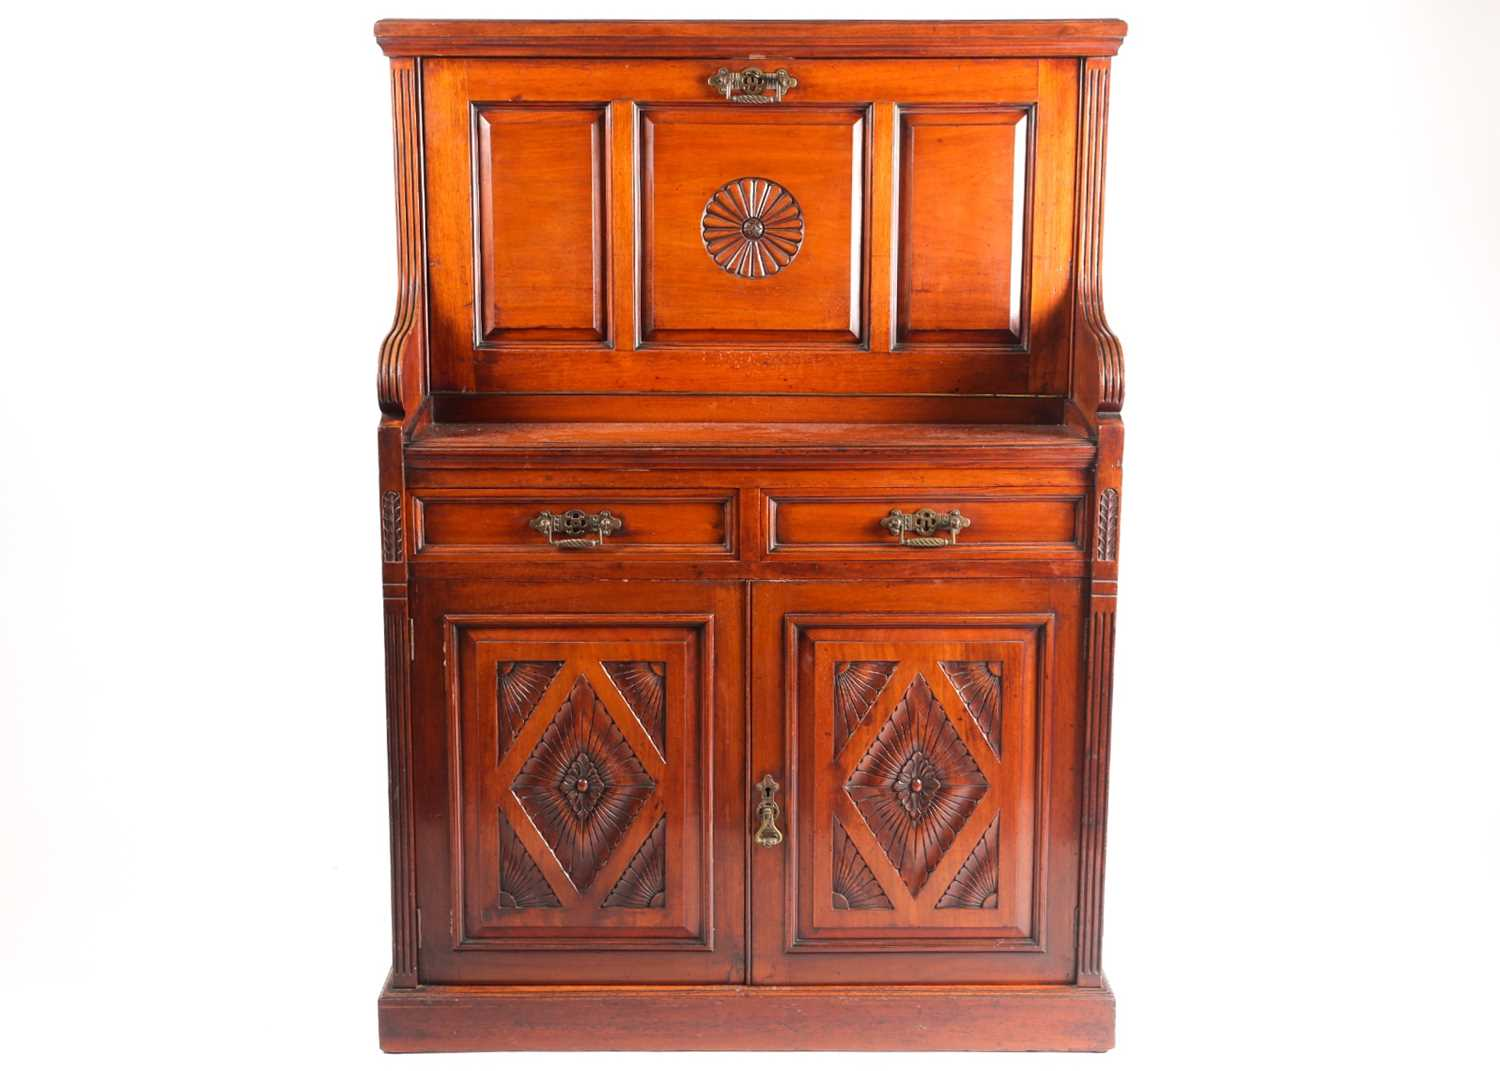 A late 19th-century Aesthetic design walnut fall front secretaire with fitted and leathered